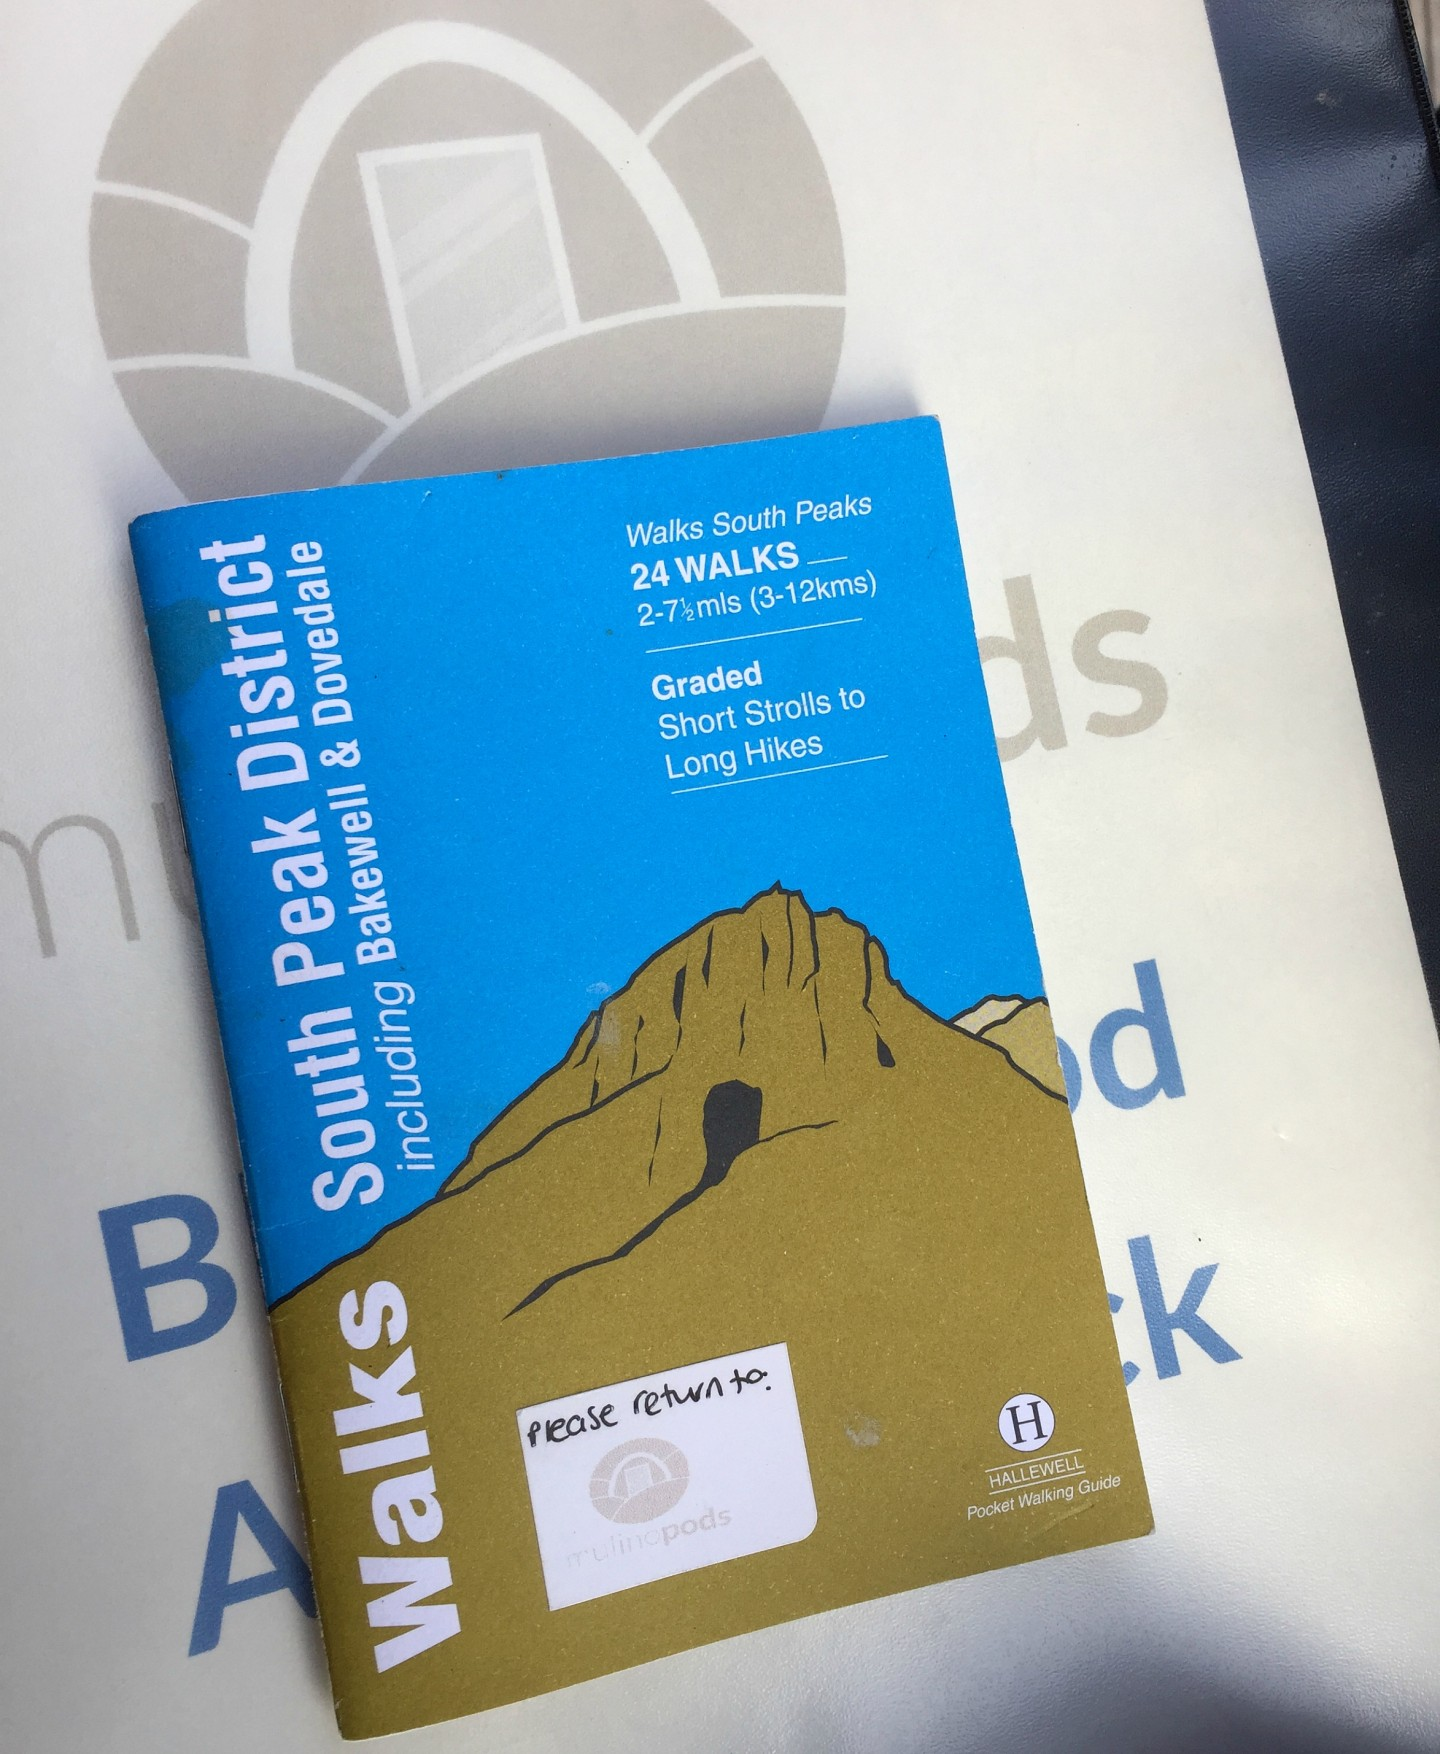 The pocket walking guide we used for our weekend in the Peak District